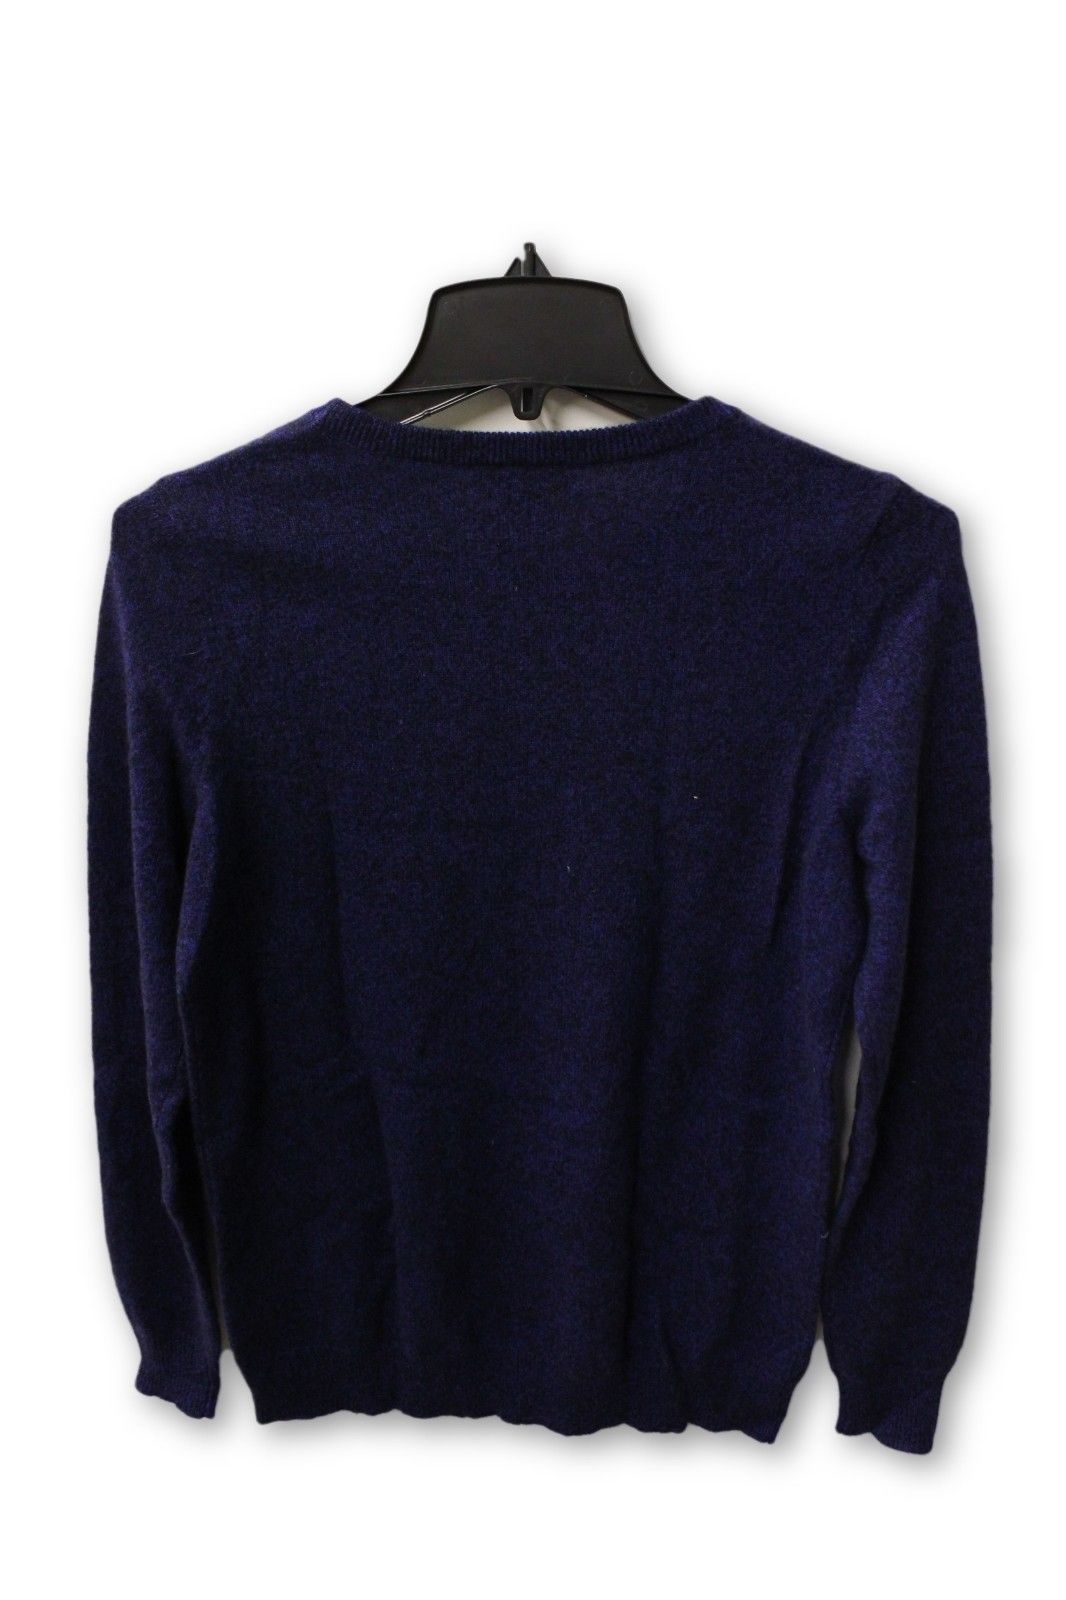 C by Bloomingdale's Women's Cashmere - Blue Crew Neck Sweater M NWT